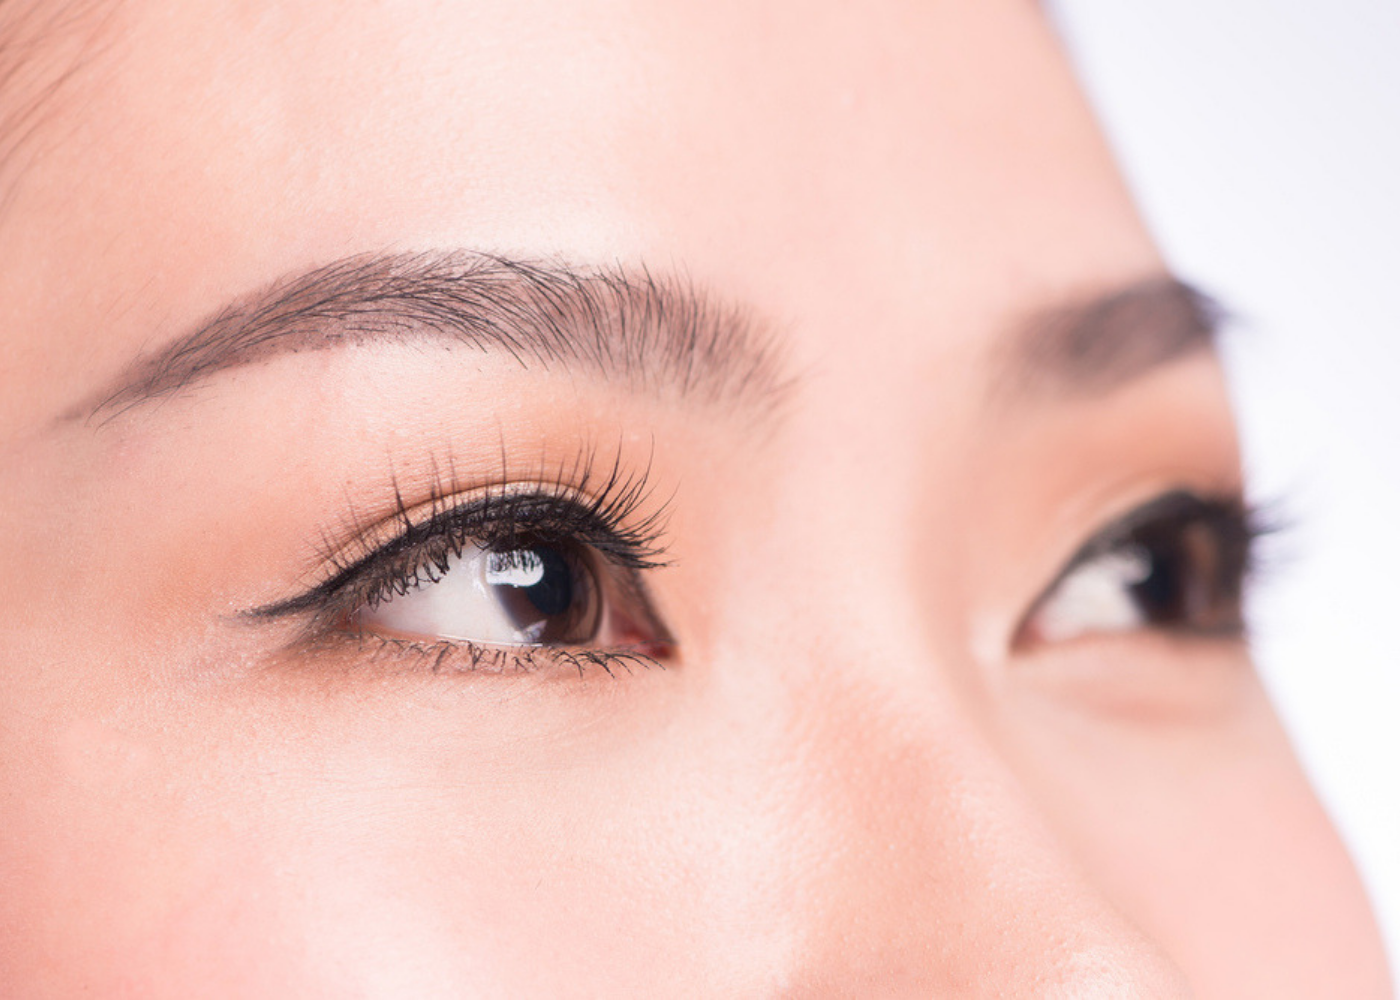 2bae3ef66f8 Brows, lashes and liner: how to get mesmerising eyes | Honeycombers